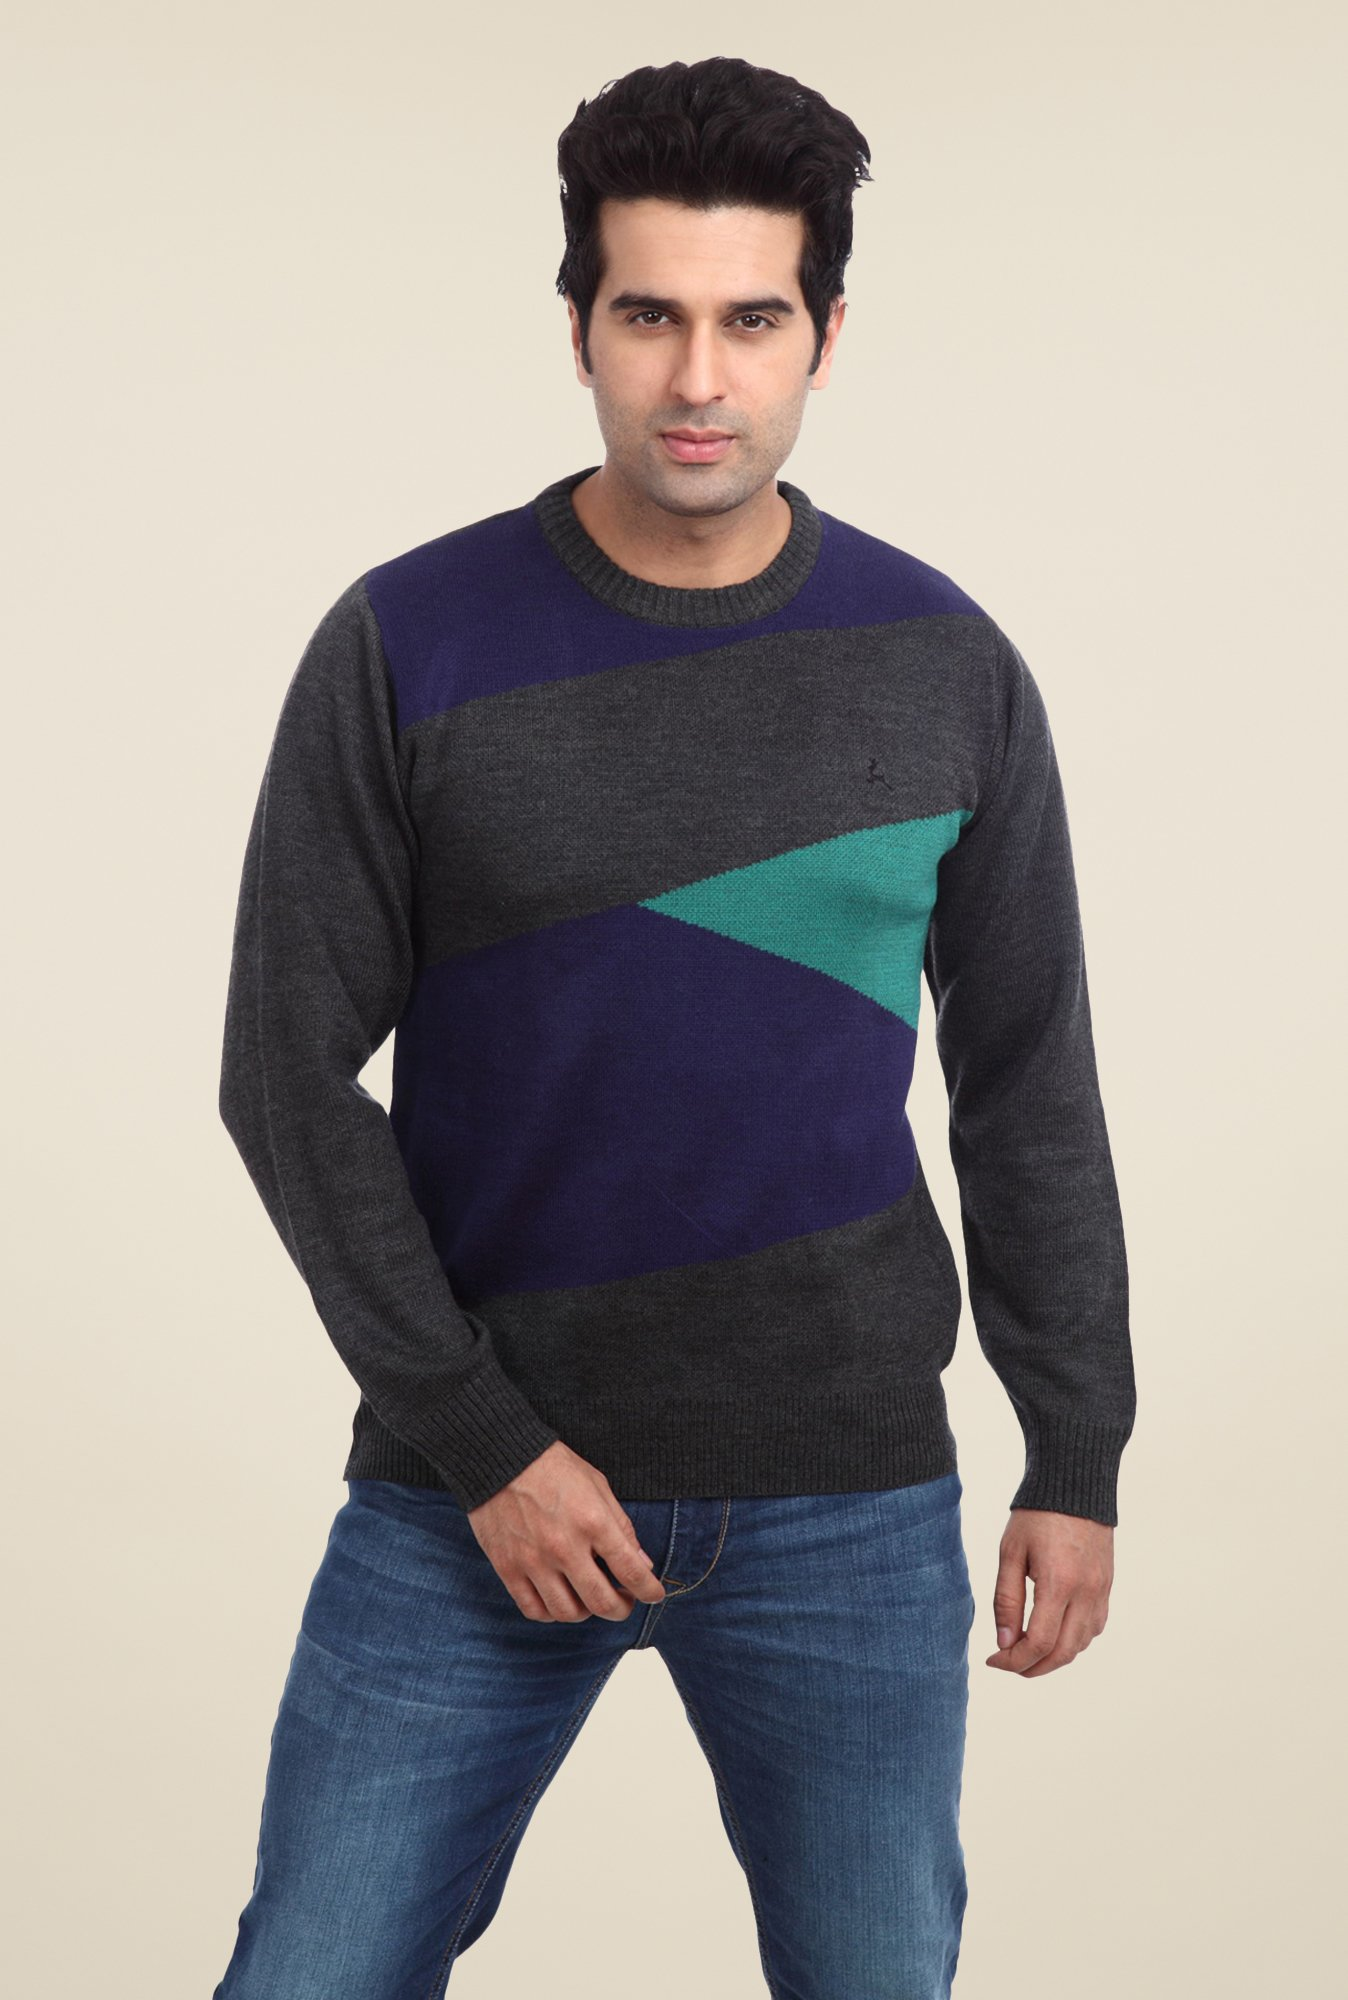 Parx Grey Printed Sweater